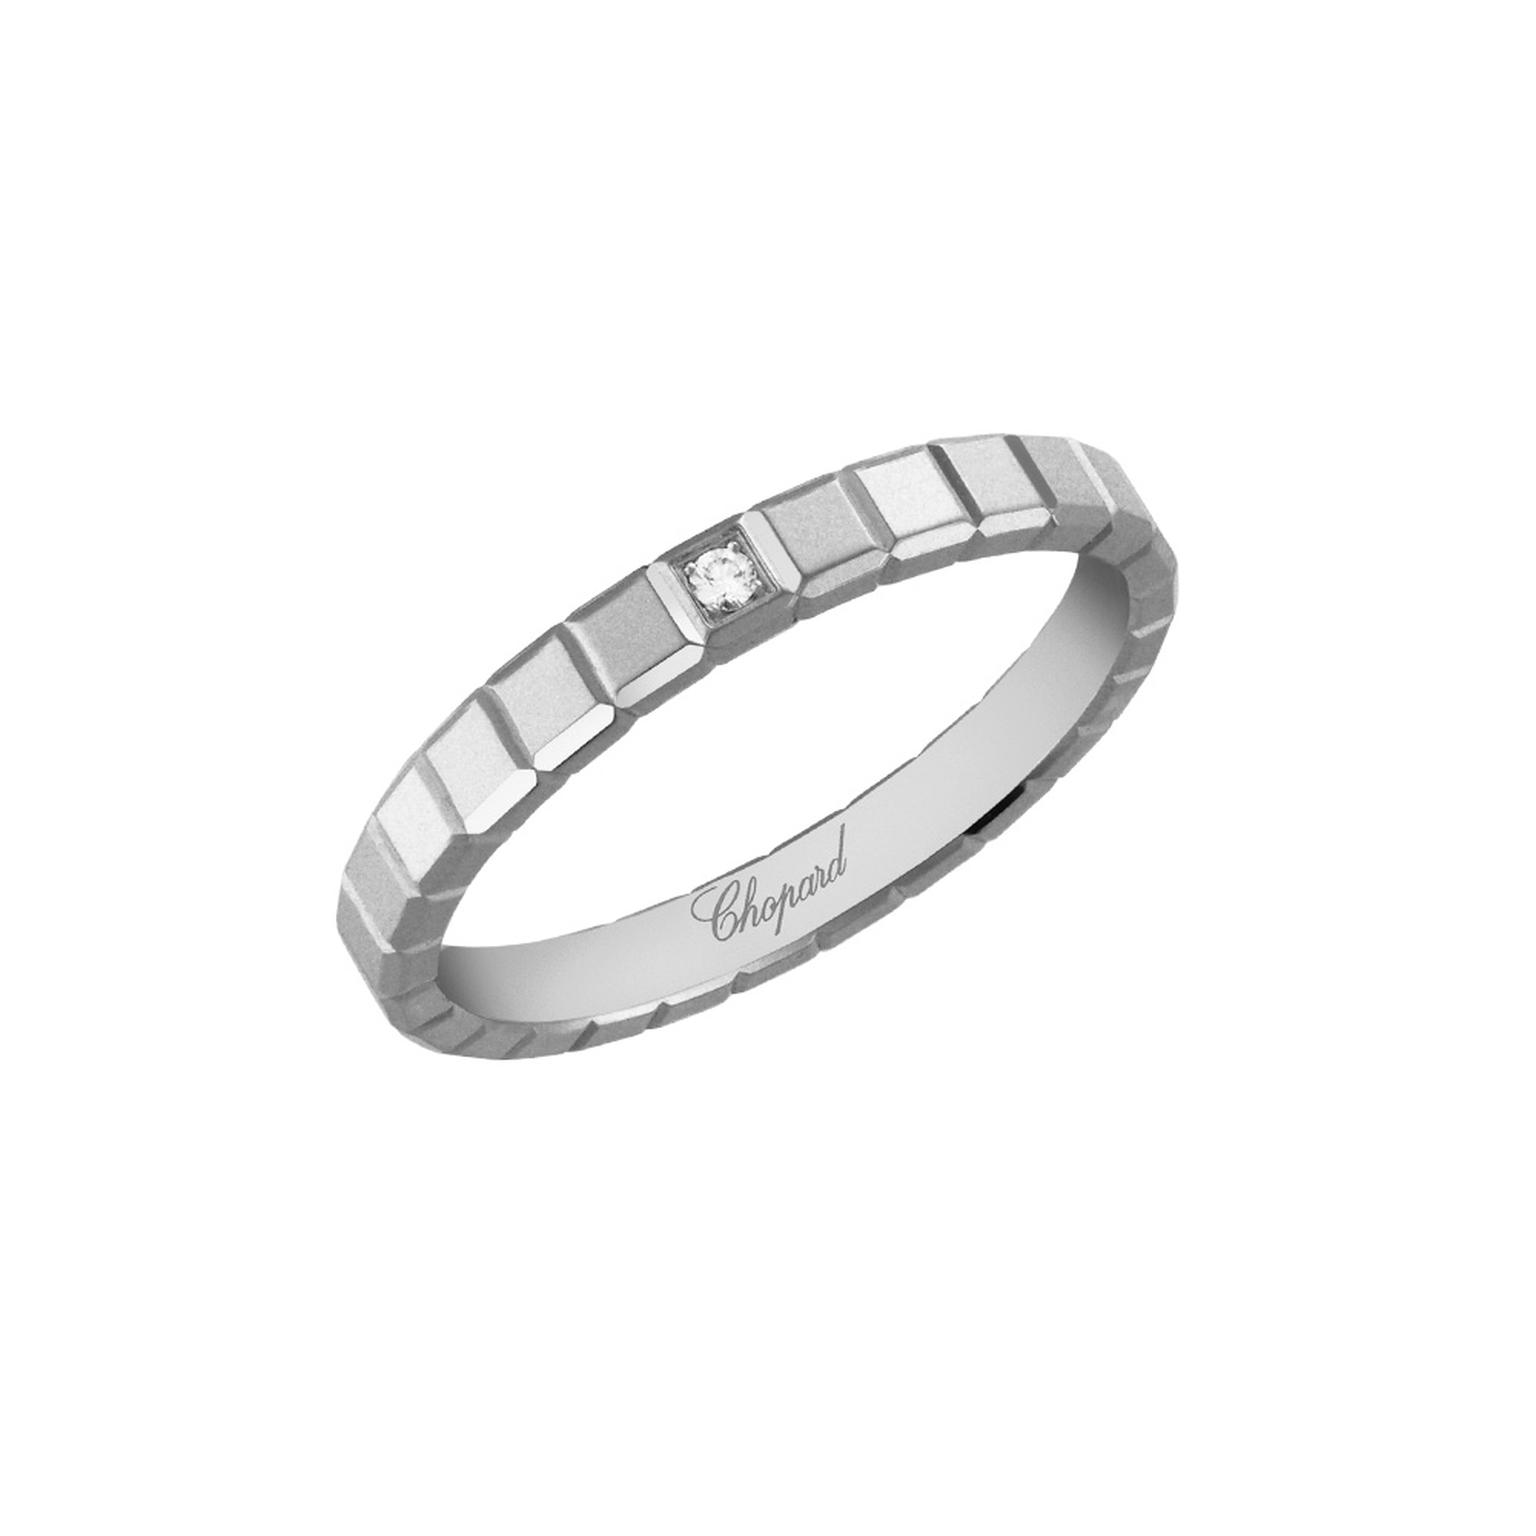 Chopard white gold Ice Cube ring